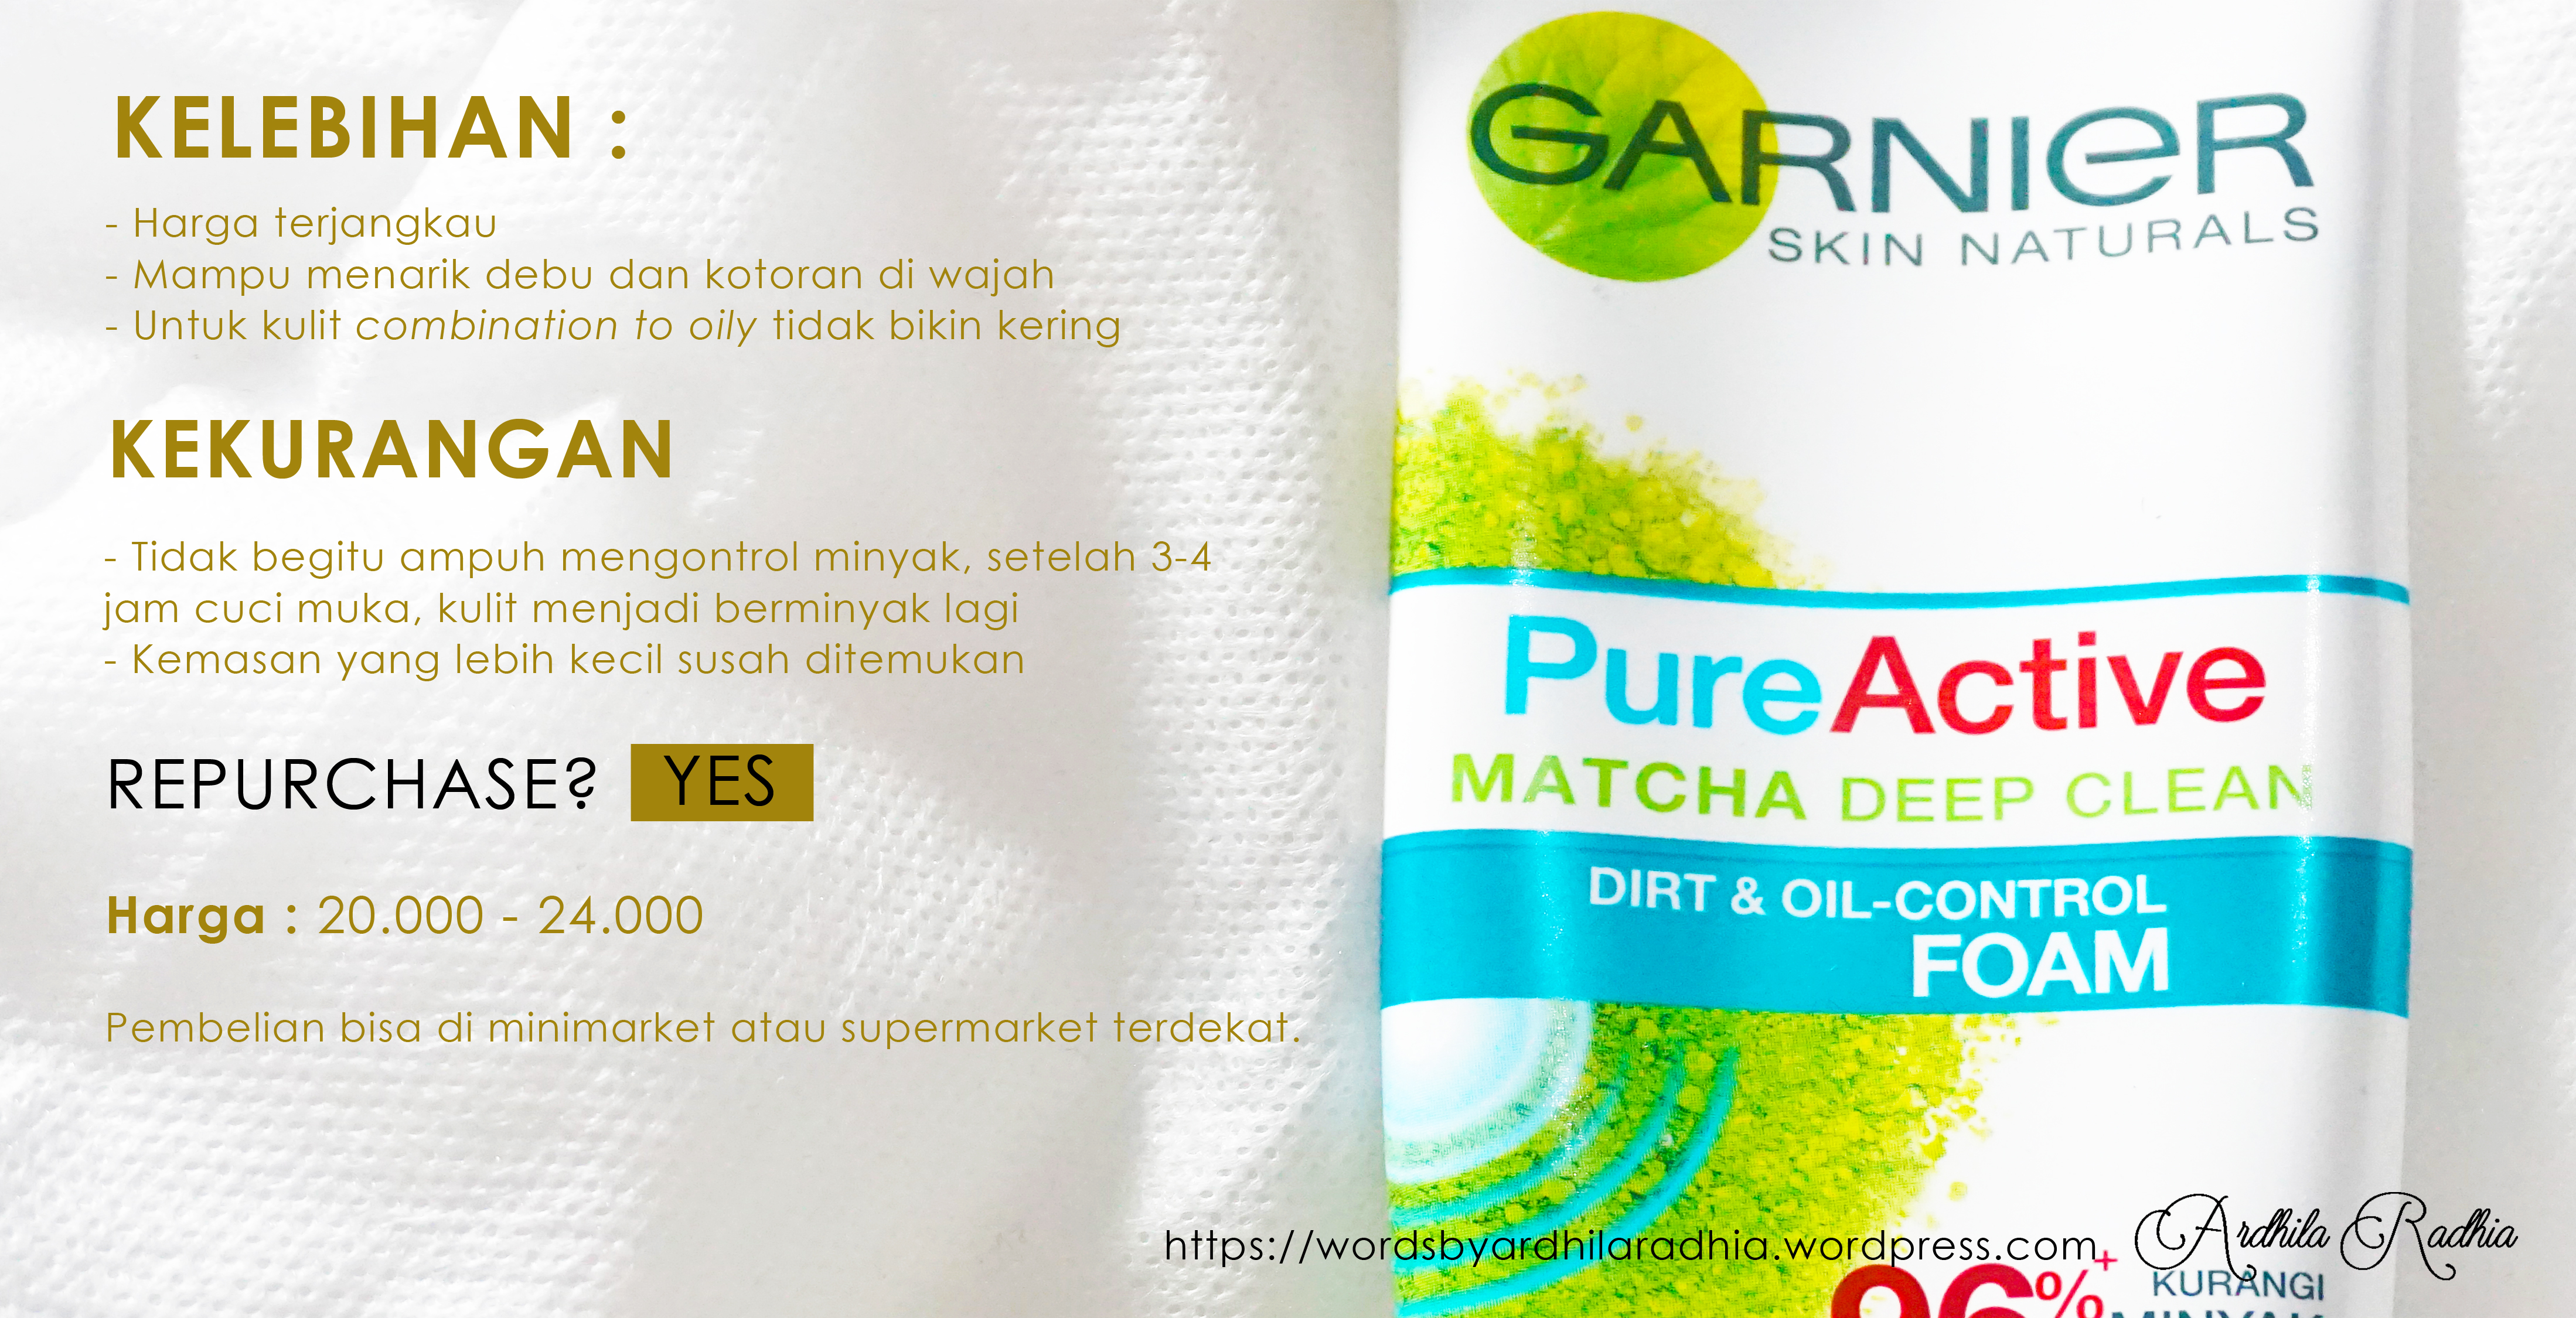 Top Products Of Garnier Pure Active Matcha Deep Clean Foam 50ml Micellar Cleasing Water Review With Words You Can Feel